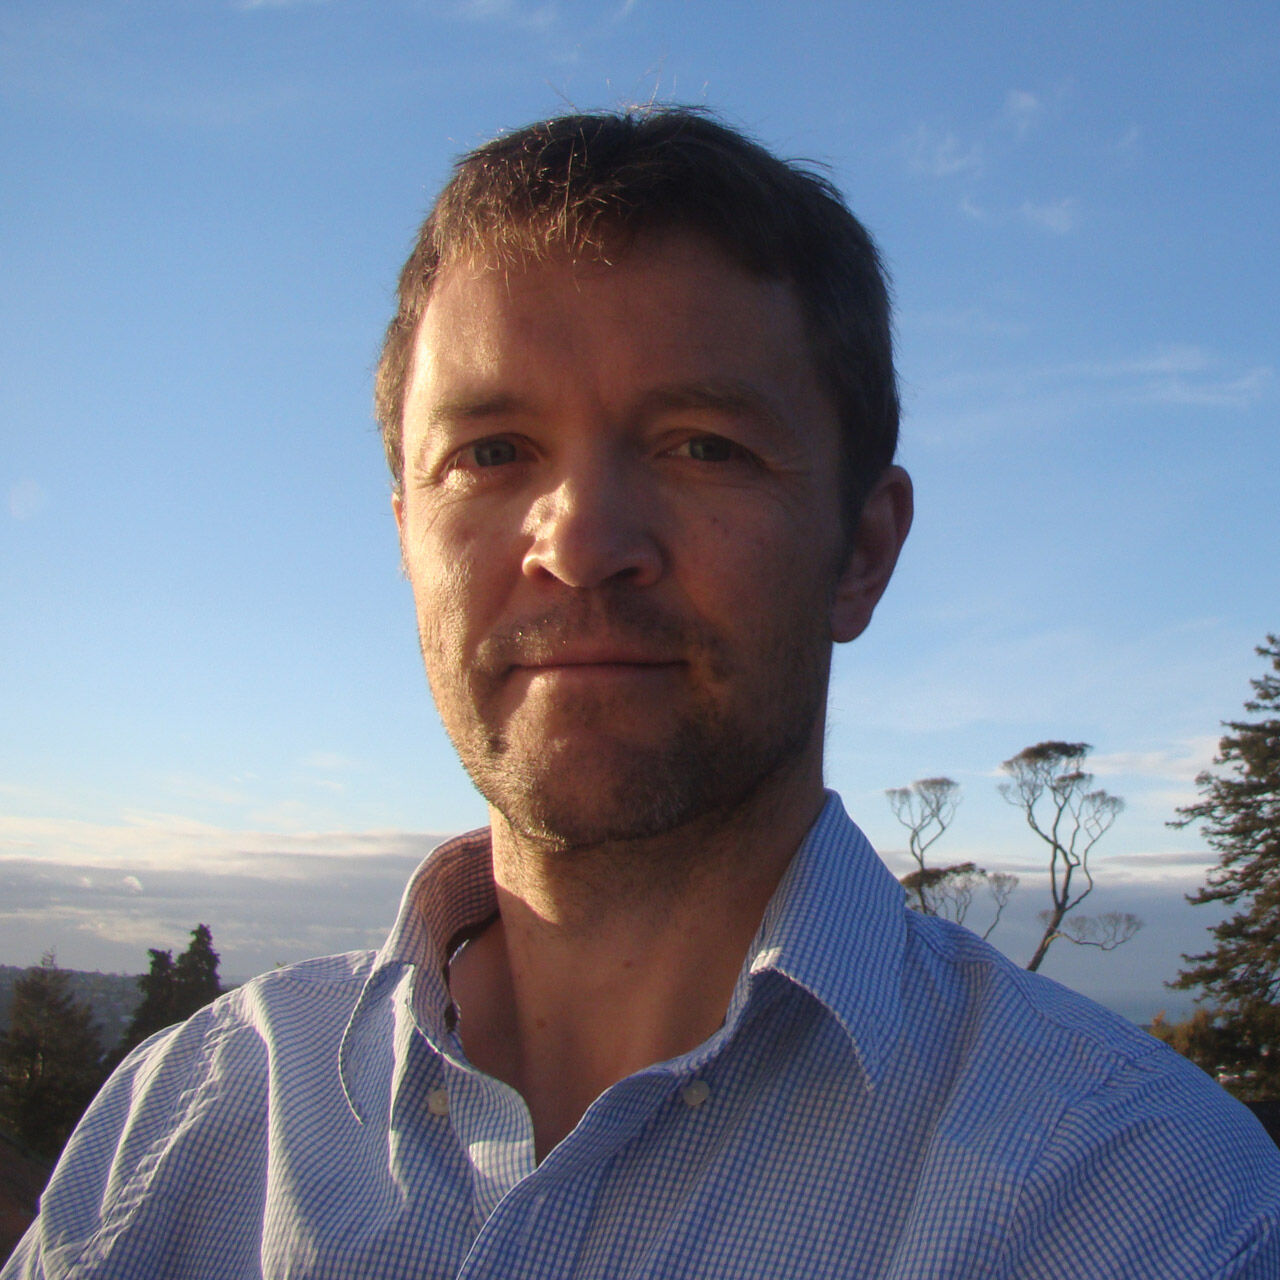 A picture of Alistair Knott